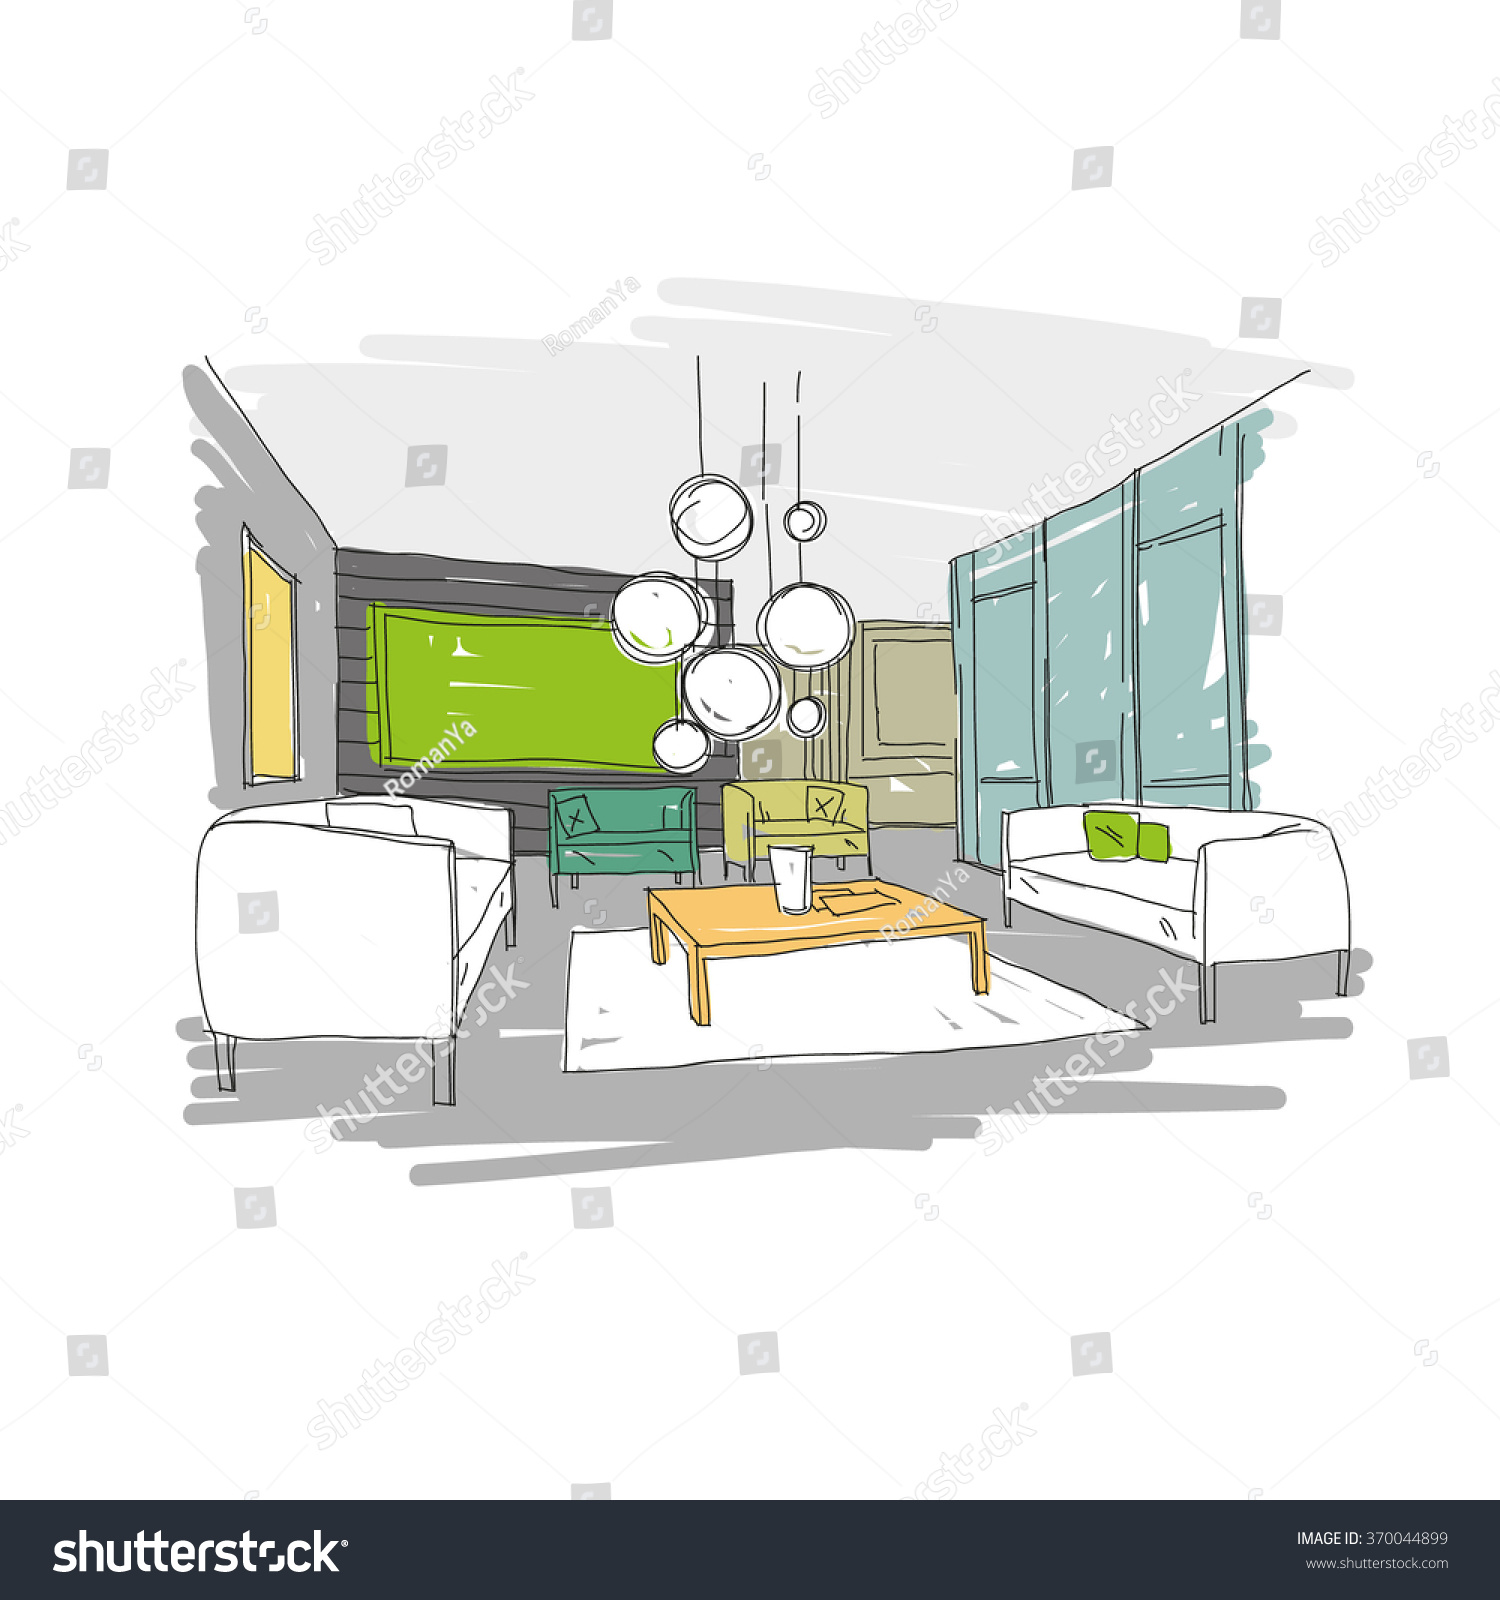 Living room design interior sketch hand stock vector for Room design vector